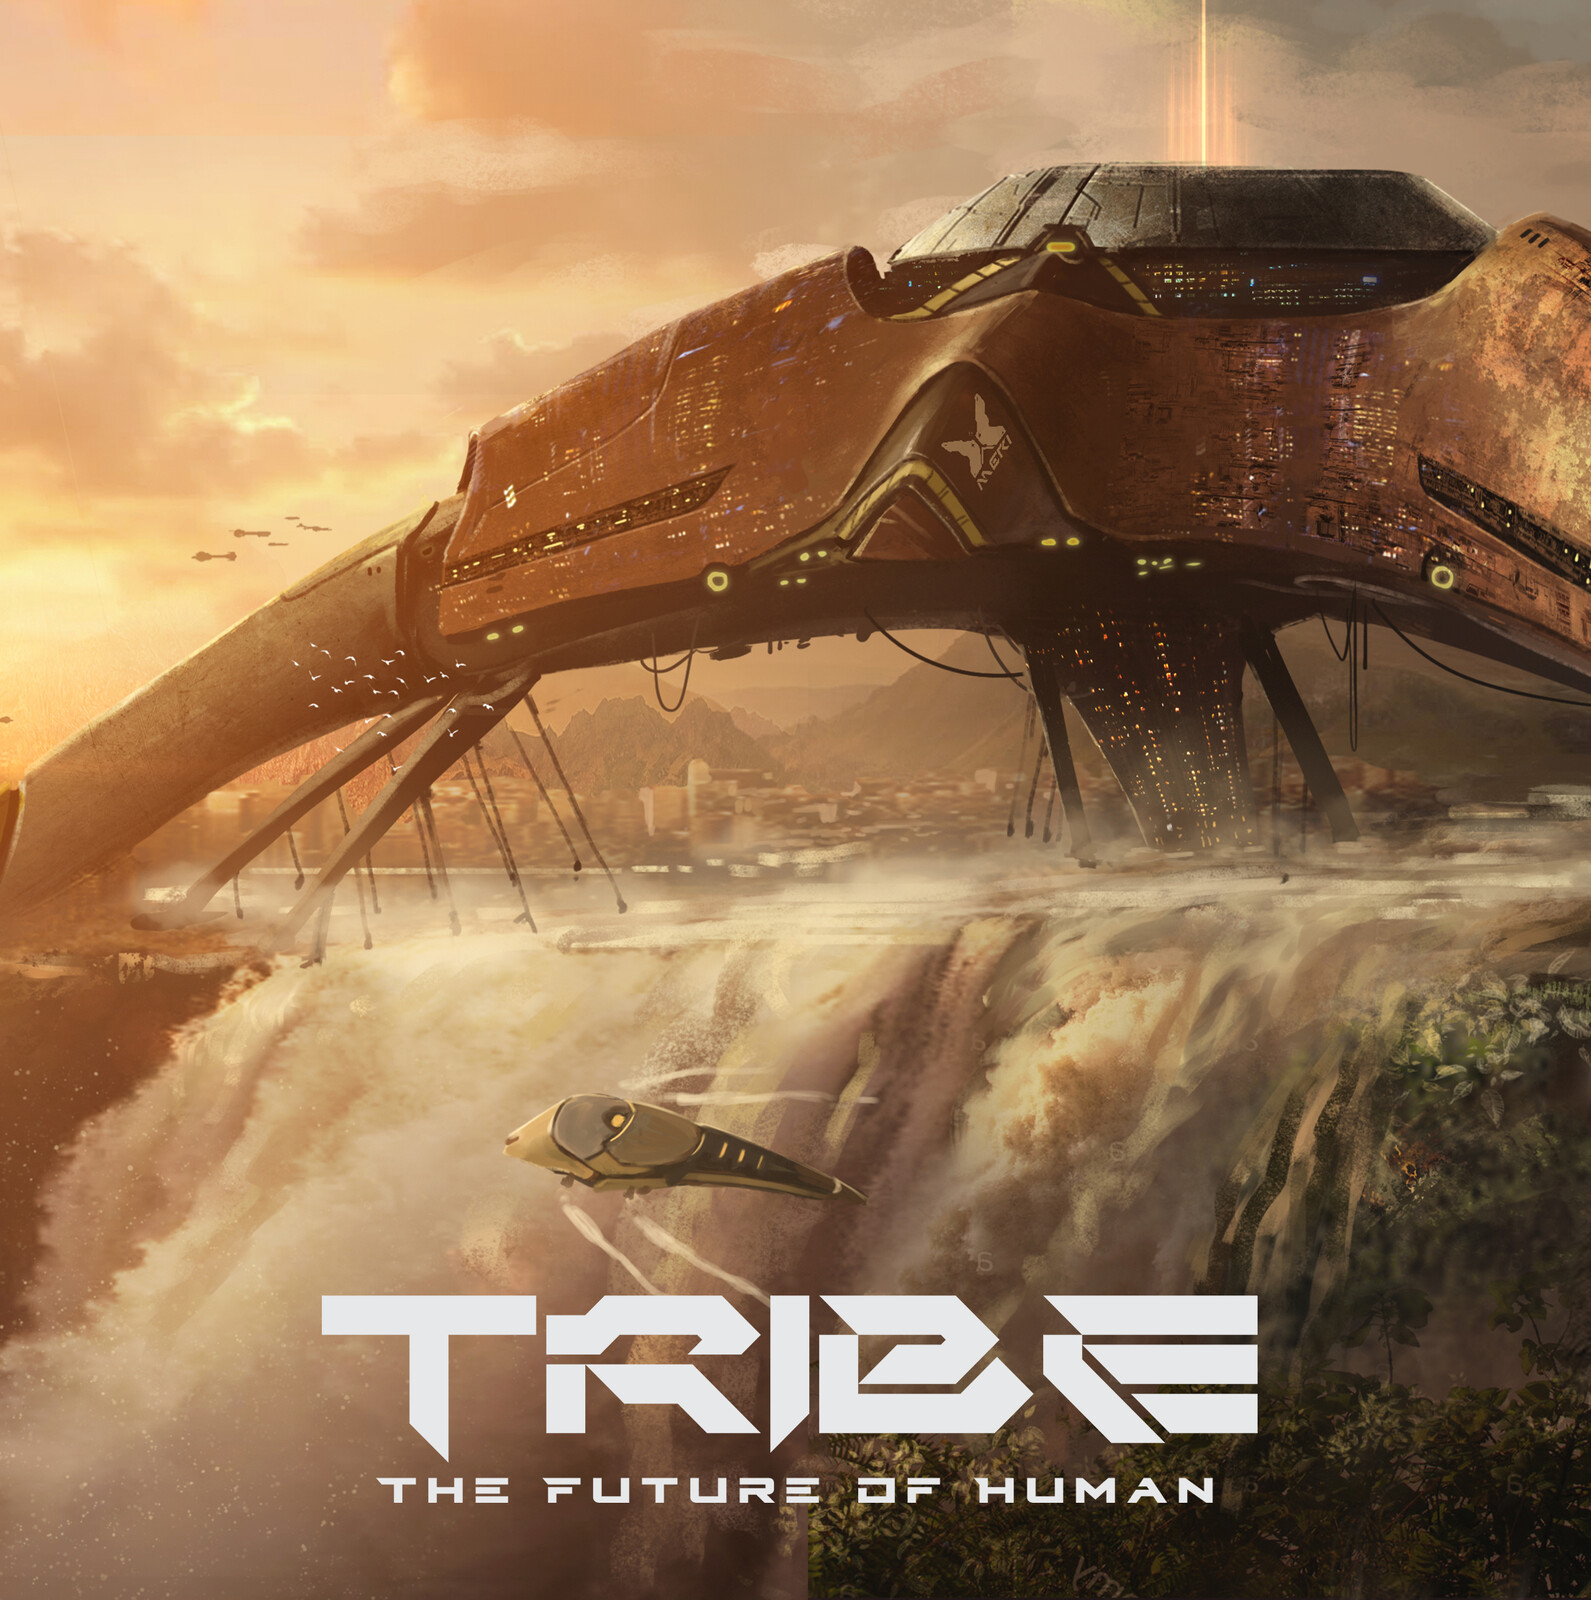 TRIBE: The future of human